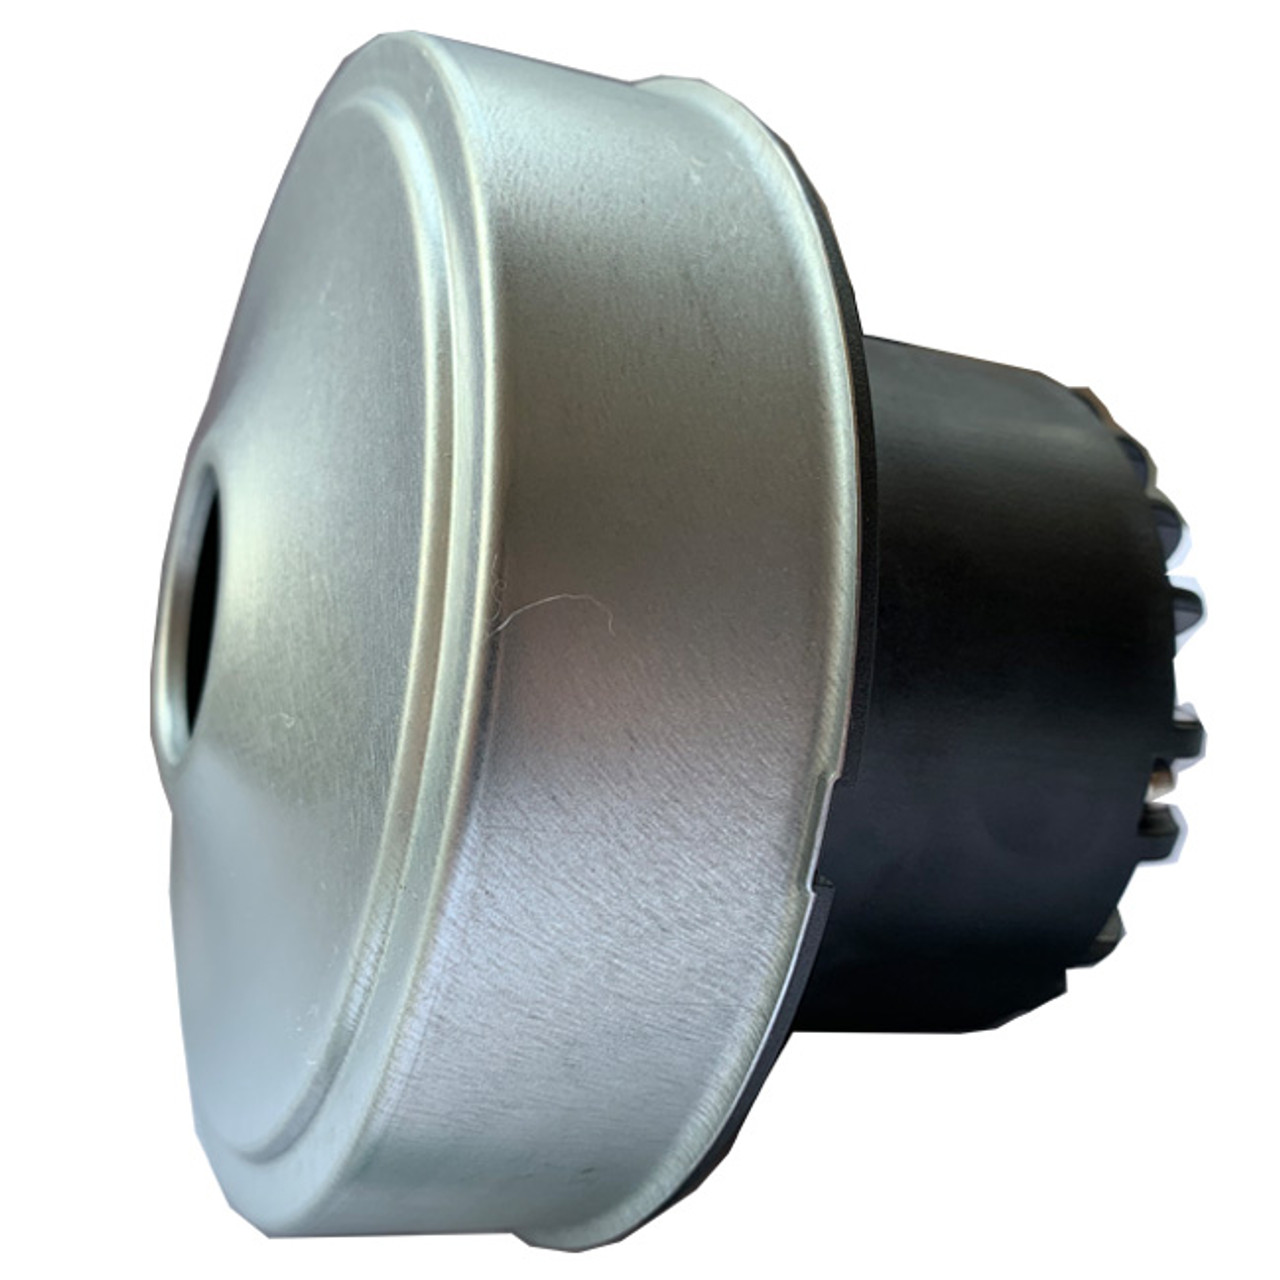 The powerful 100% brushless motor pure copper coil